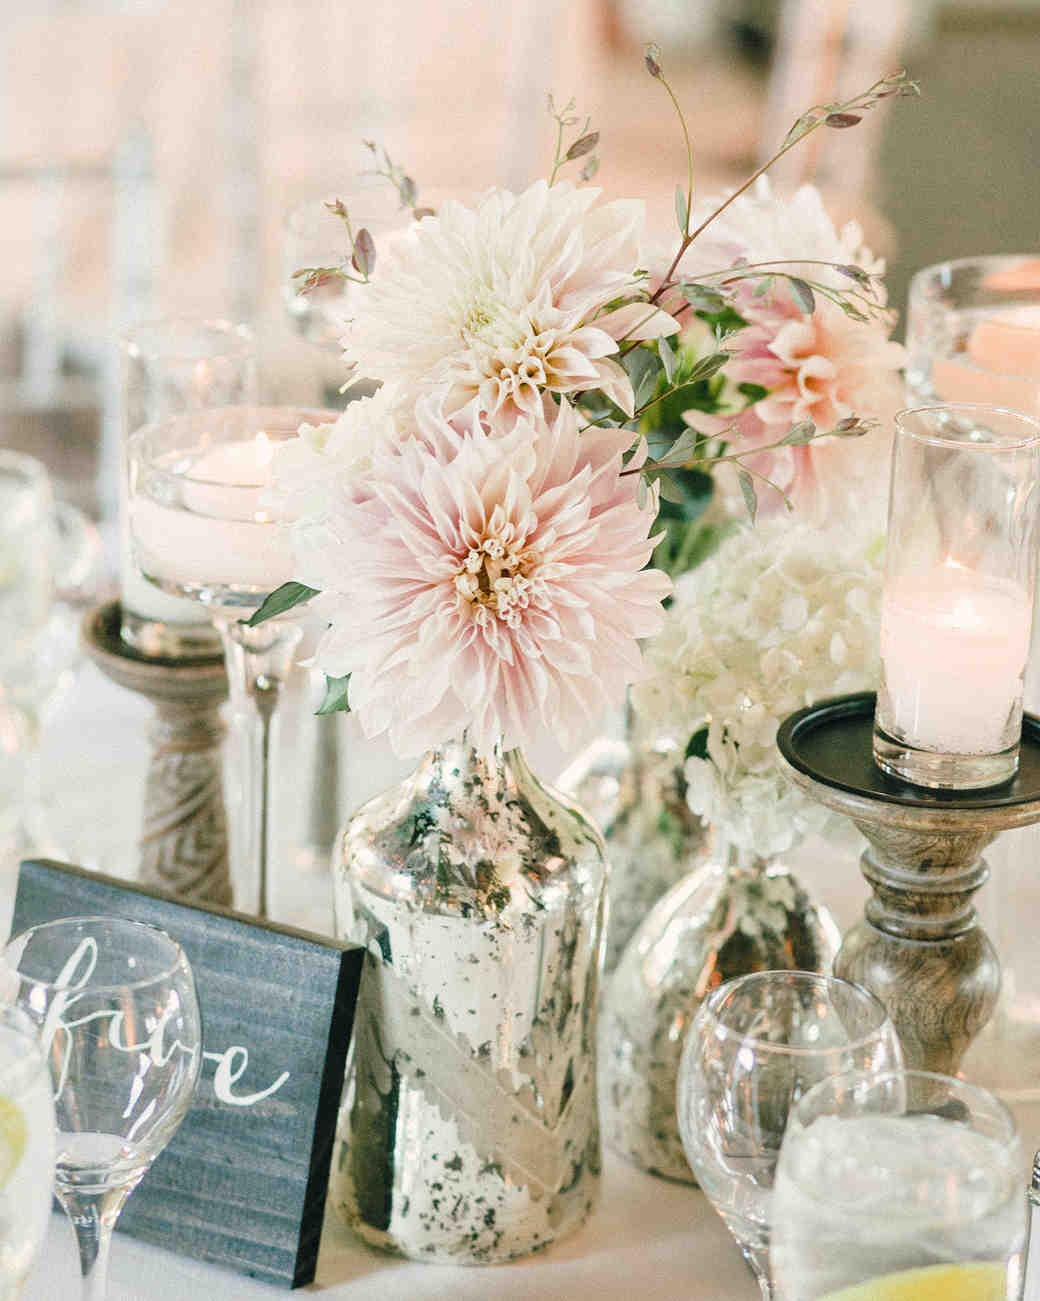 Cluster Centerpiece of Mercury Glass Vases with Dahlias